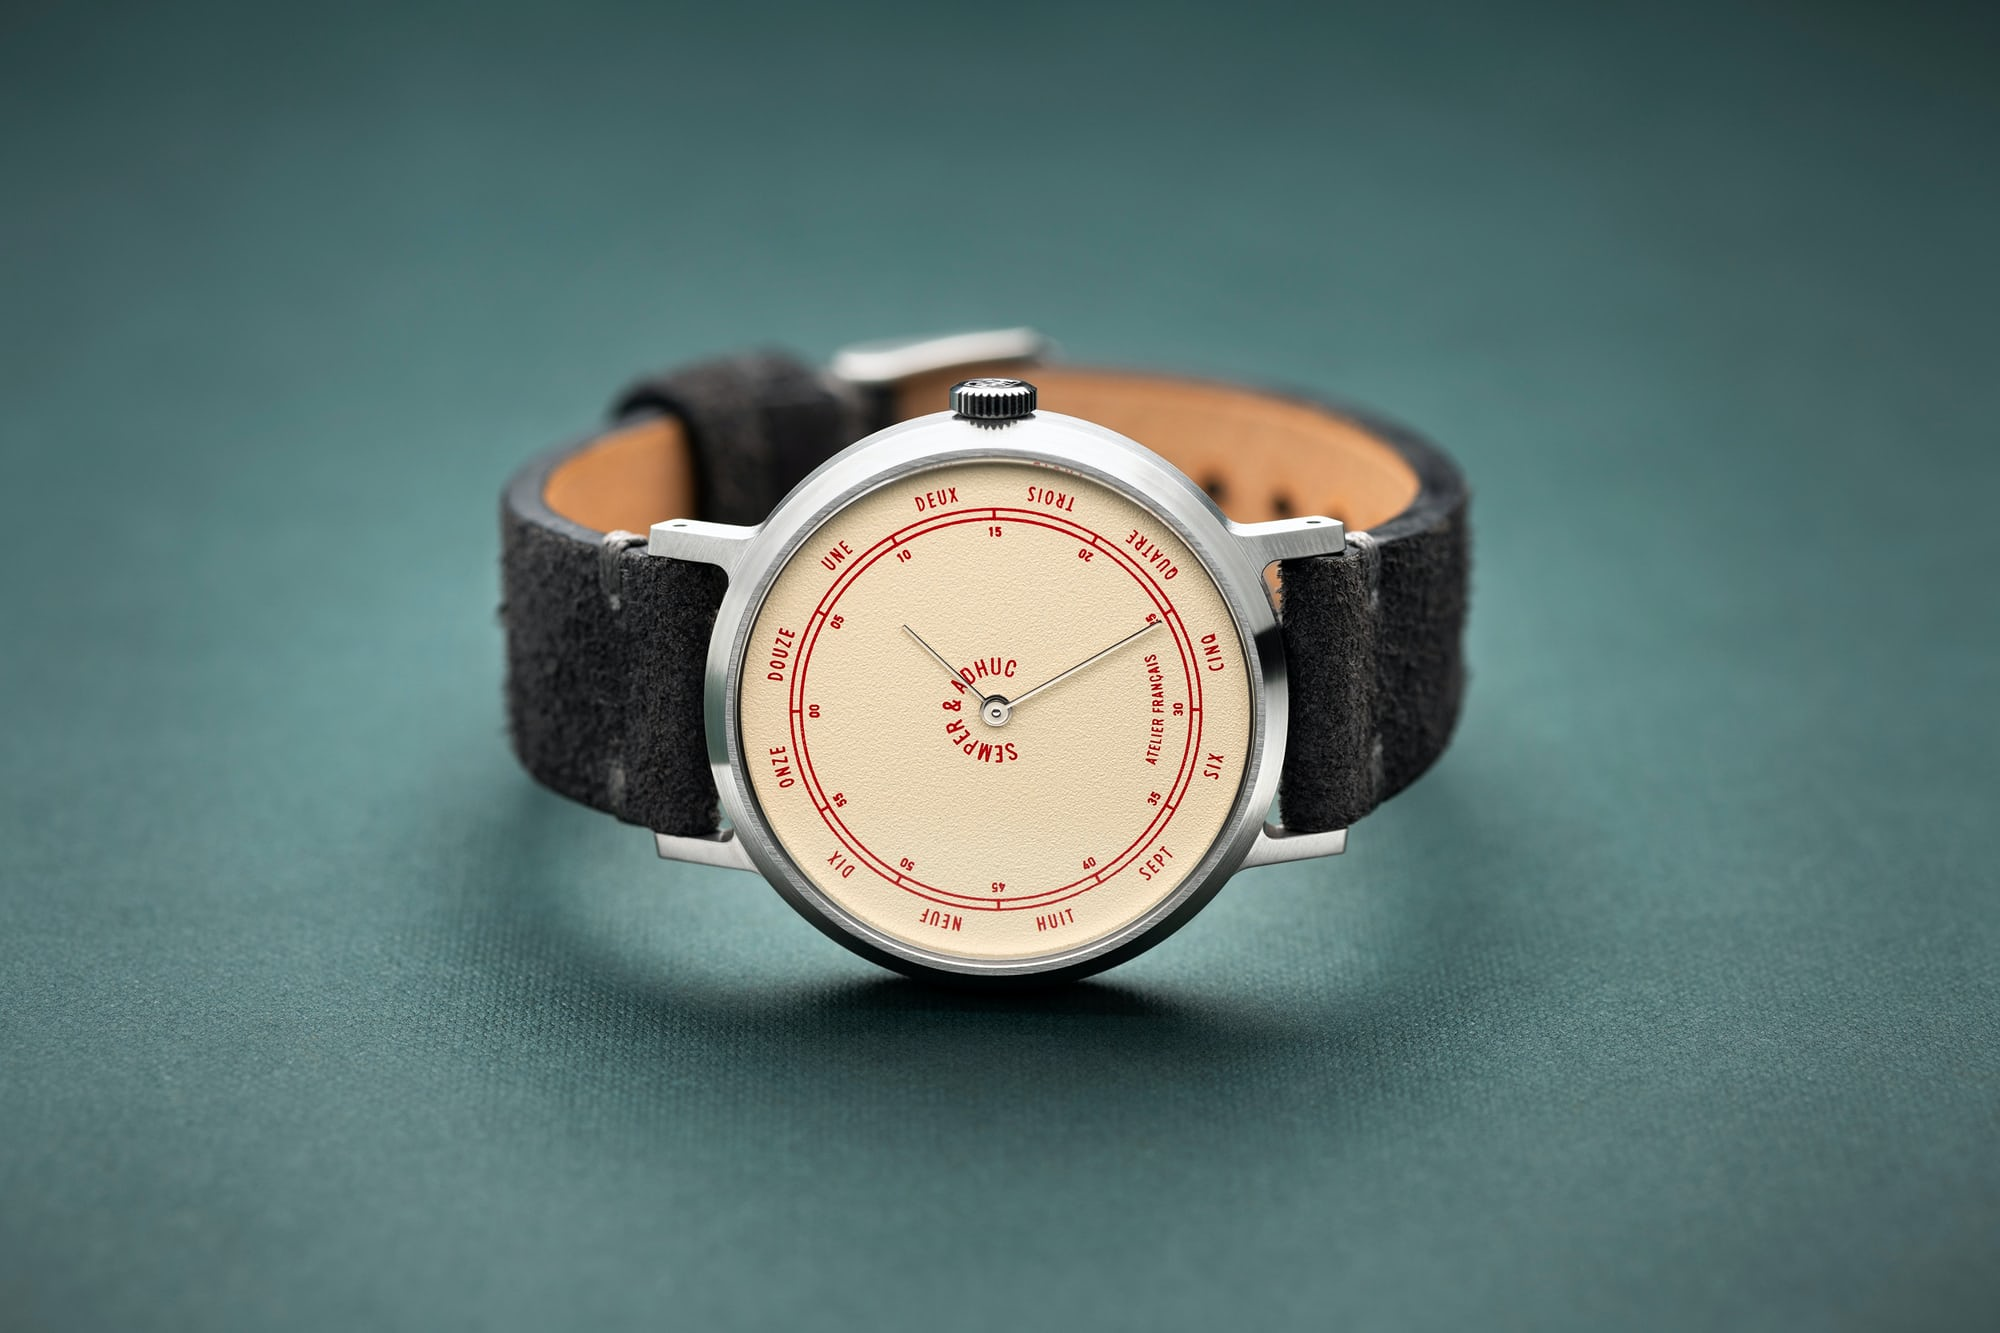 Introducing: Semper & Adhuc Brings Vintage Watch Movements Back To Life